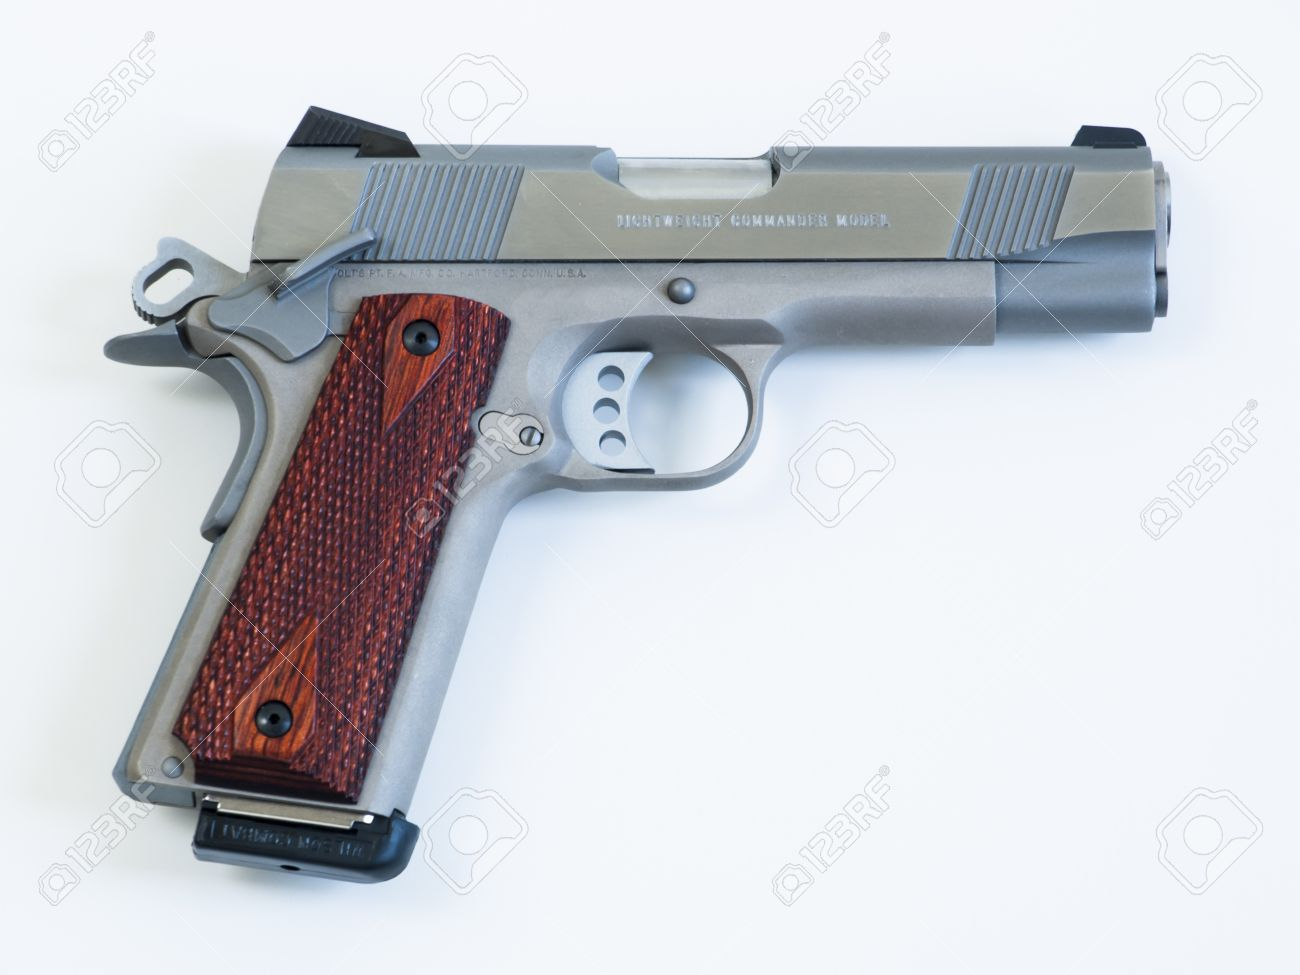 Colt 1911 Commander Es Una Pistola De Acción Simple, Semi-automática ...